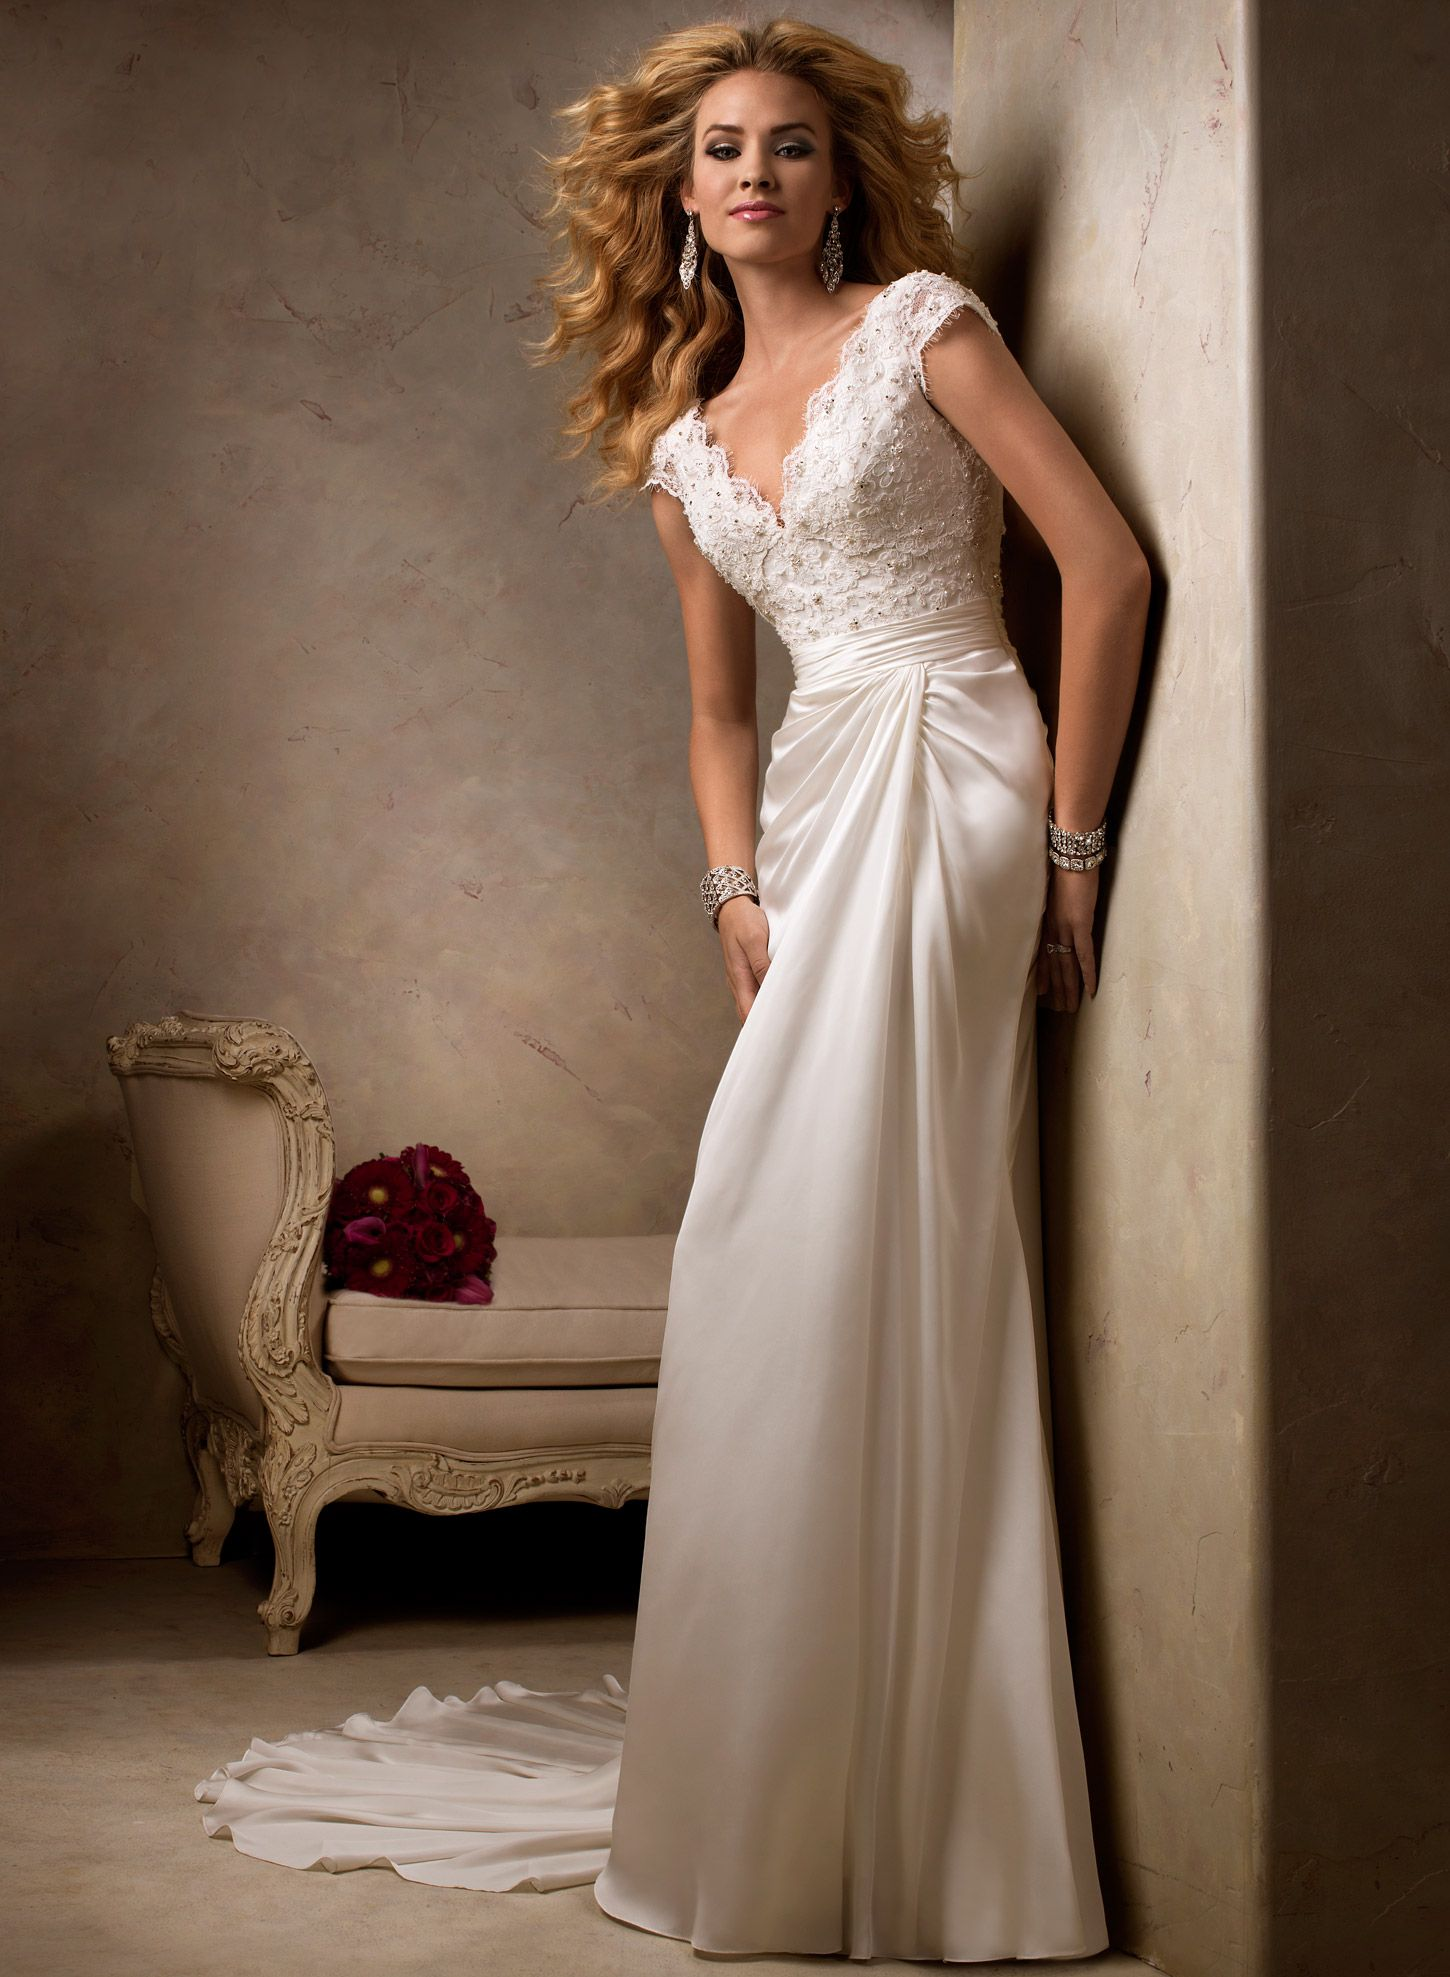 Elegant wedding dresses for mature brides  Fiona  by Maggie Sottero  Here comes the bride all dressed in